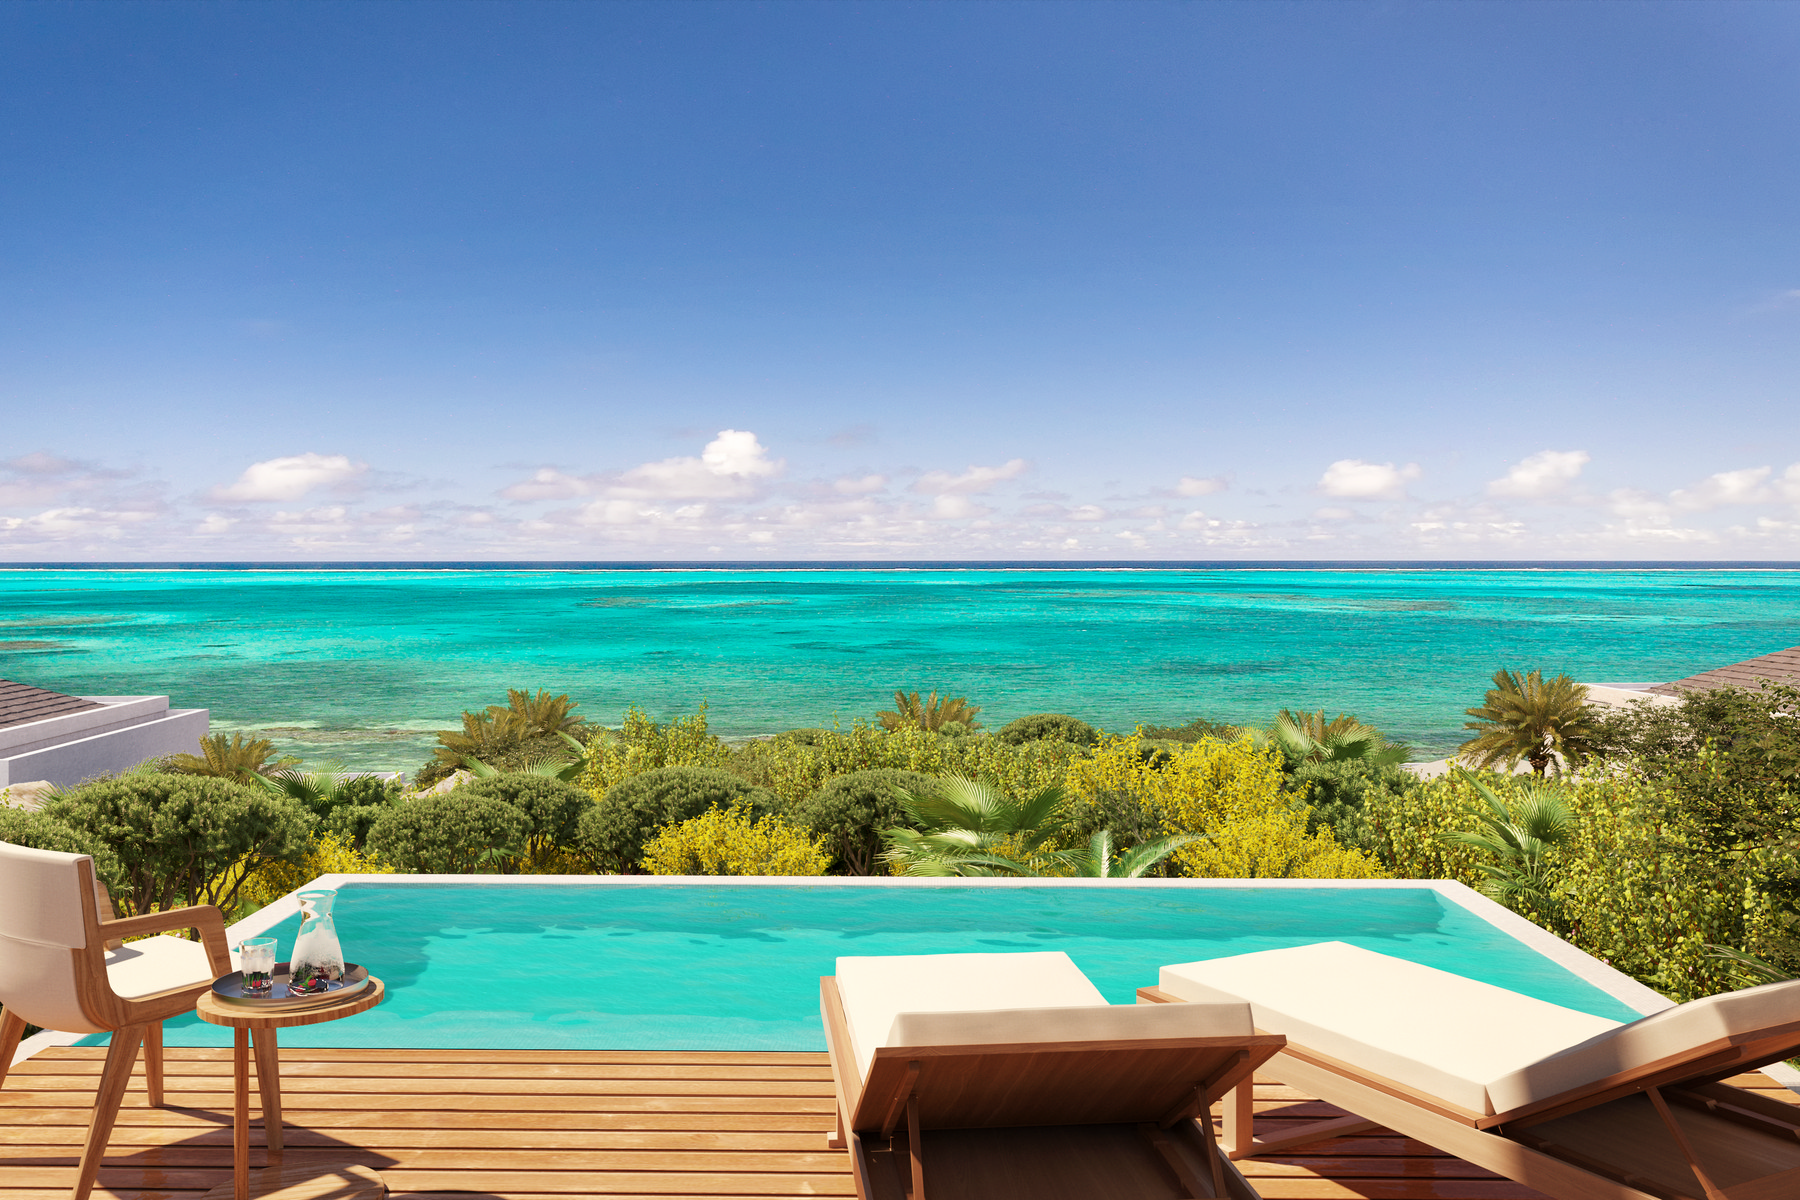 Single Family Home for Sale at Rock House Two Bedroom Ridgetop Rock House Resort, International Drive Cheshire Hall, Providenciales TKCA 1ZZ Turks And Caicos Islands